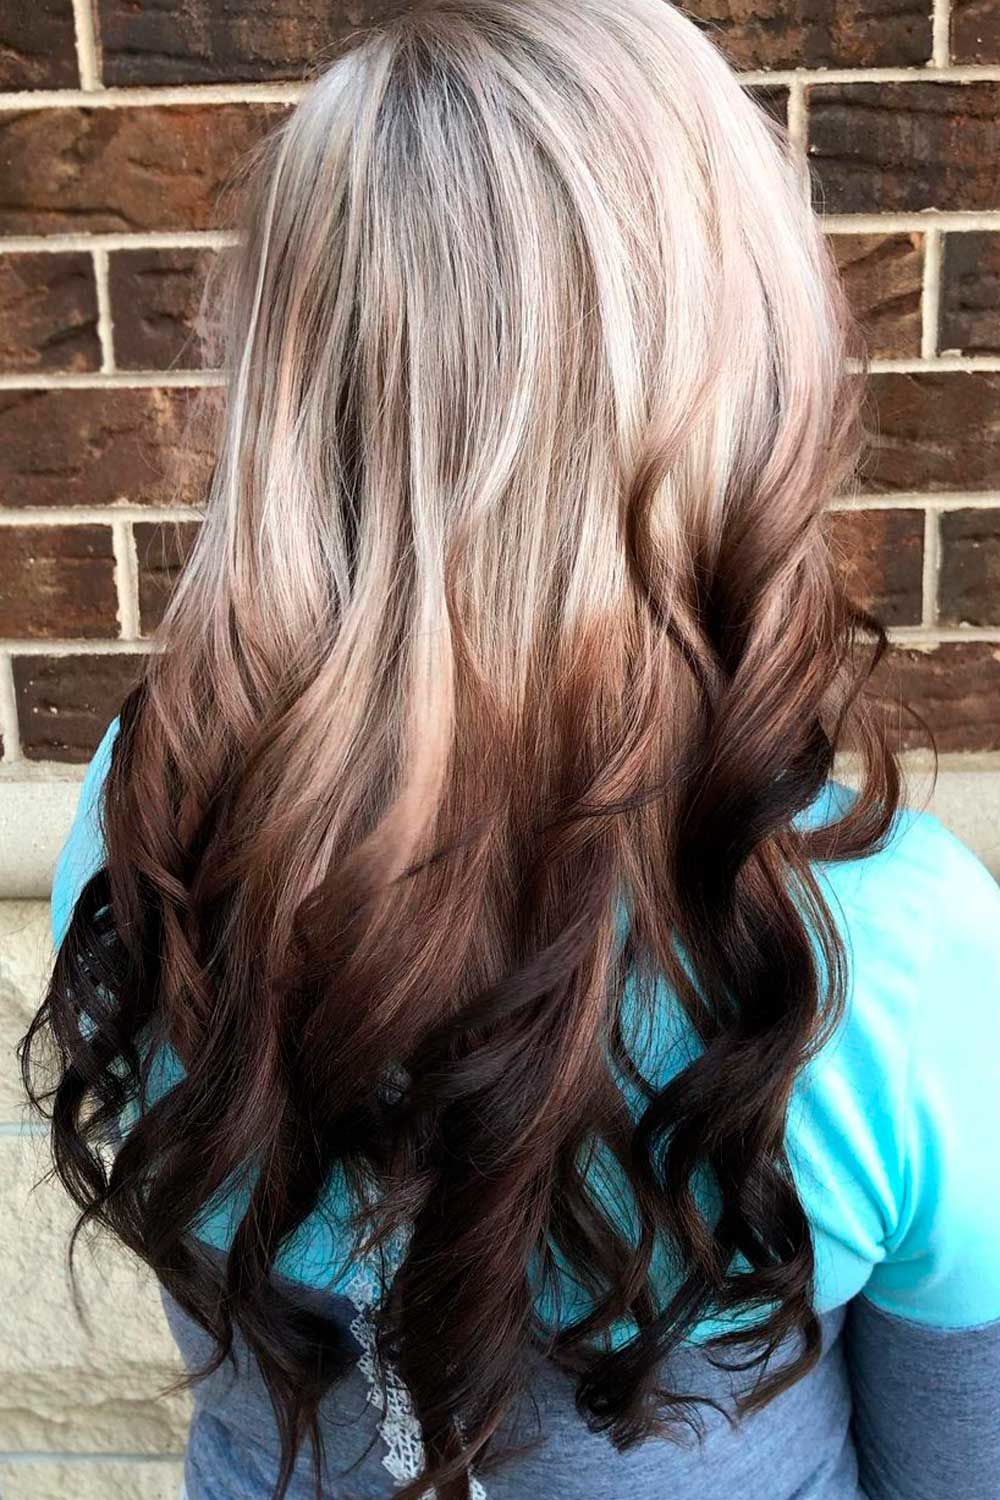 Reverse Ombre Hair Blonde To Brown, reverse ombre hair blonde to brown, reverse ombre blonde to brown, brown ombre hair